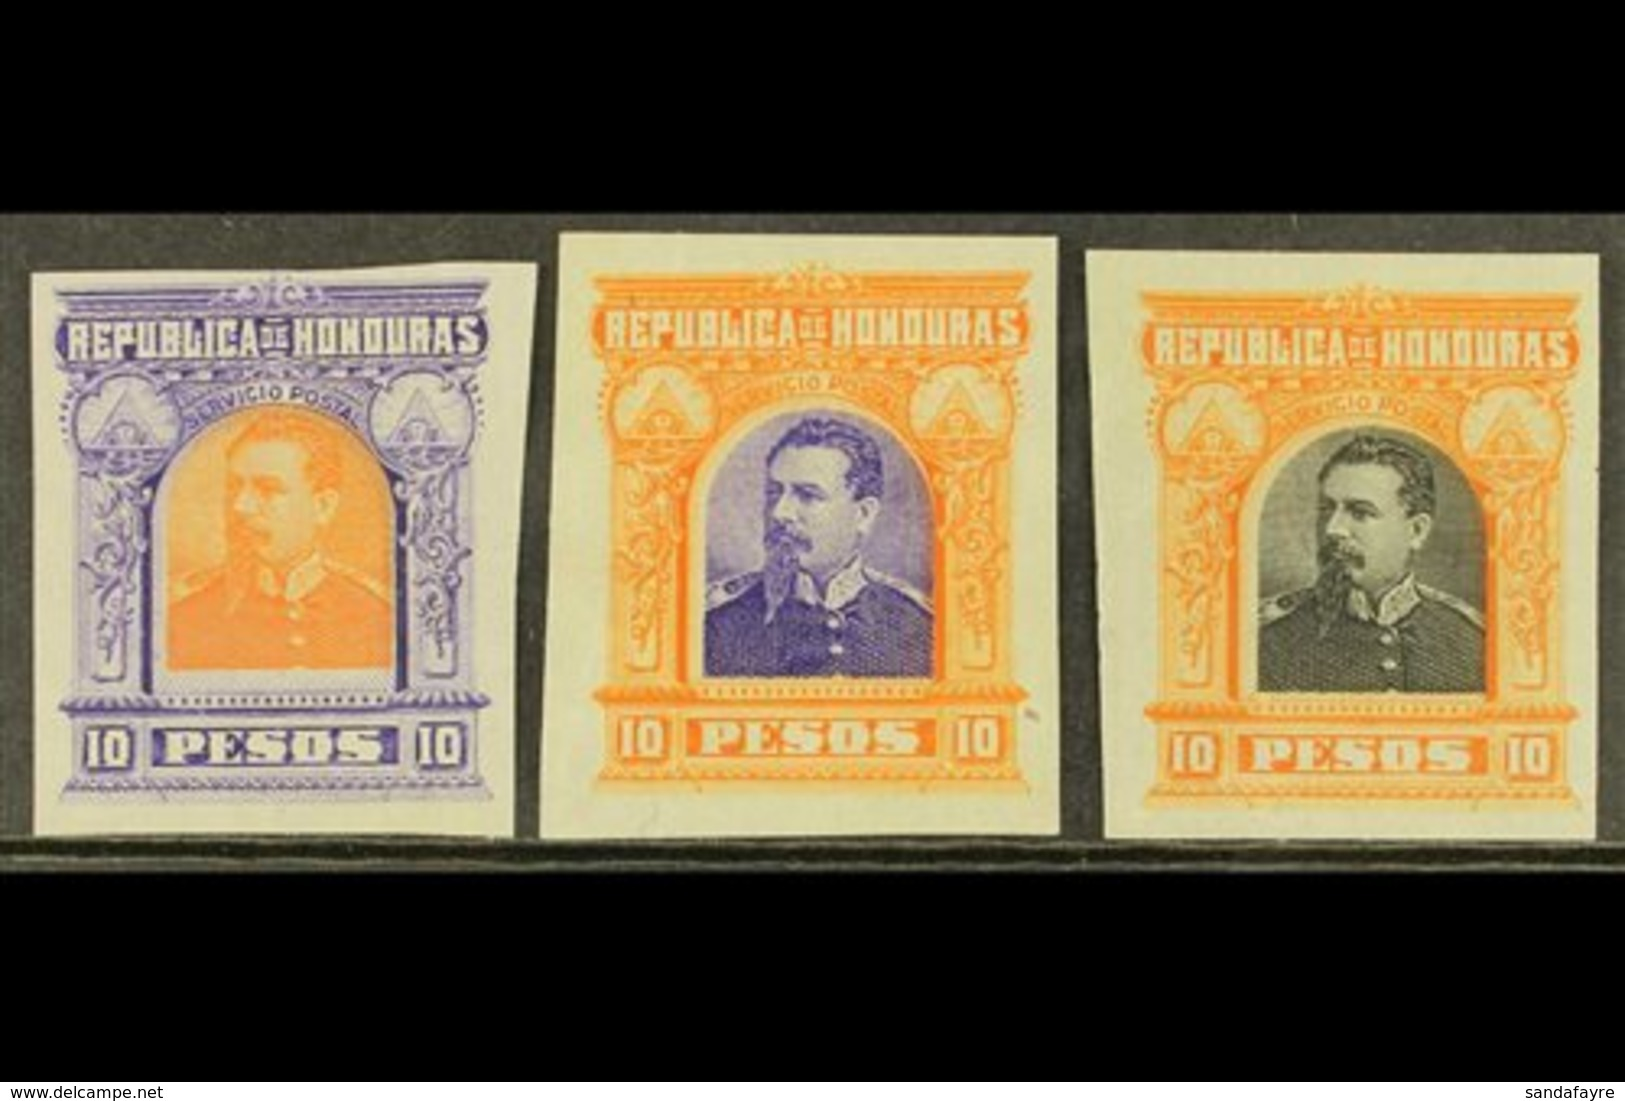 1891 10p President Brogan Large Design (as SG 69) - Three IMPERF PLATE PROOFS Printed In Different Colour Combinations O - Honduras